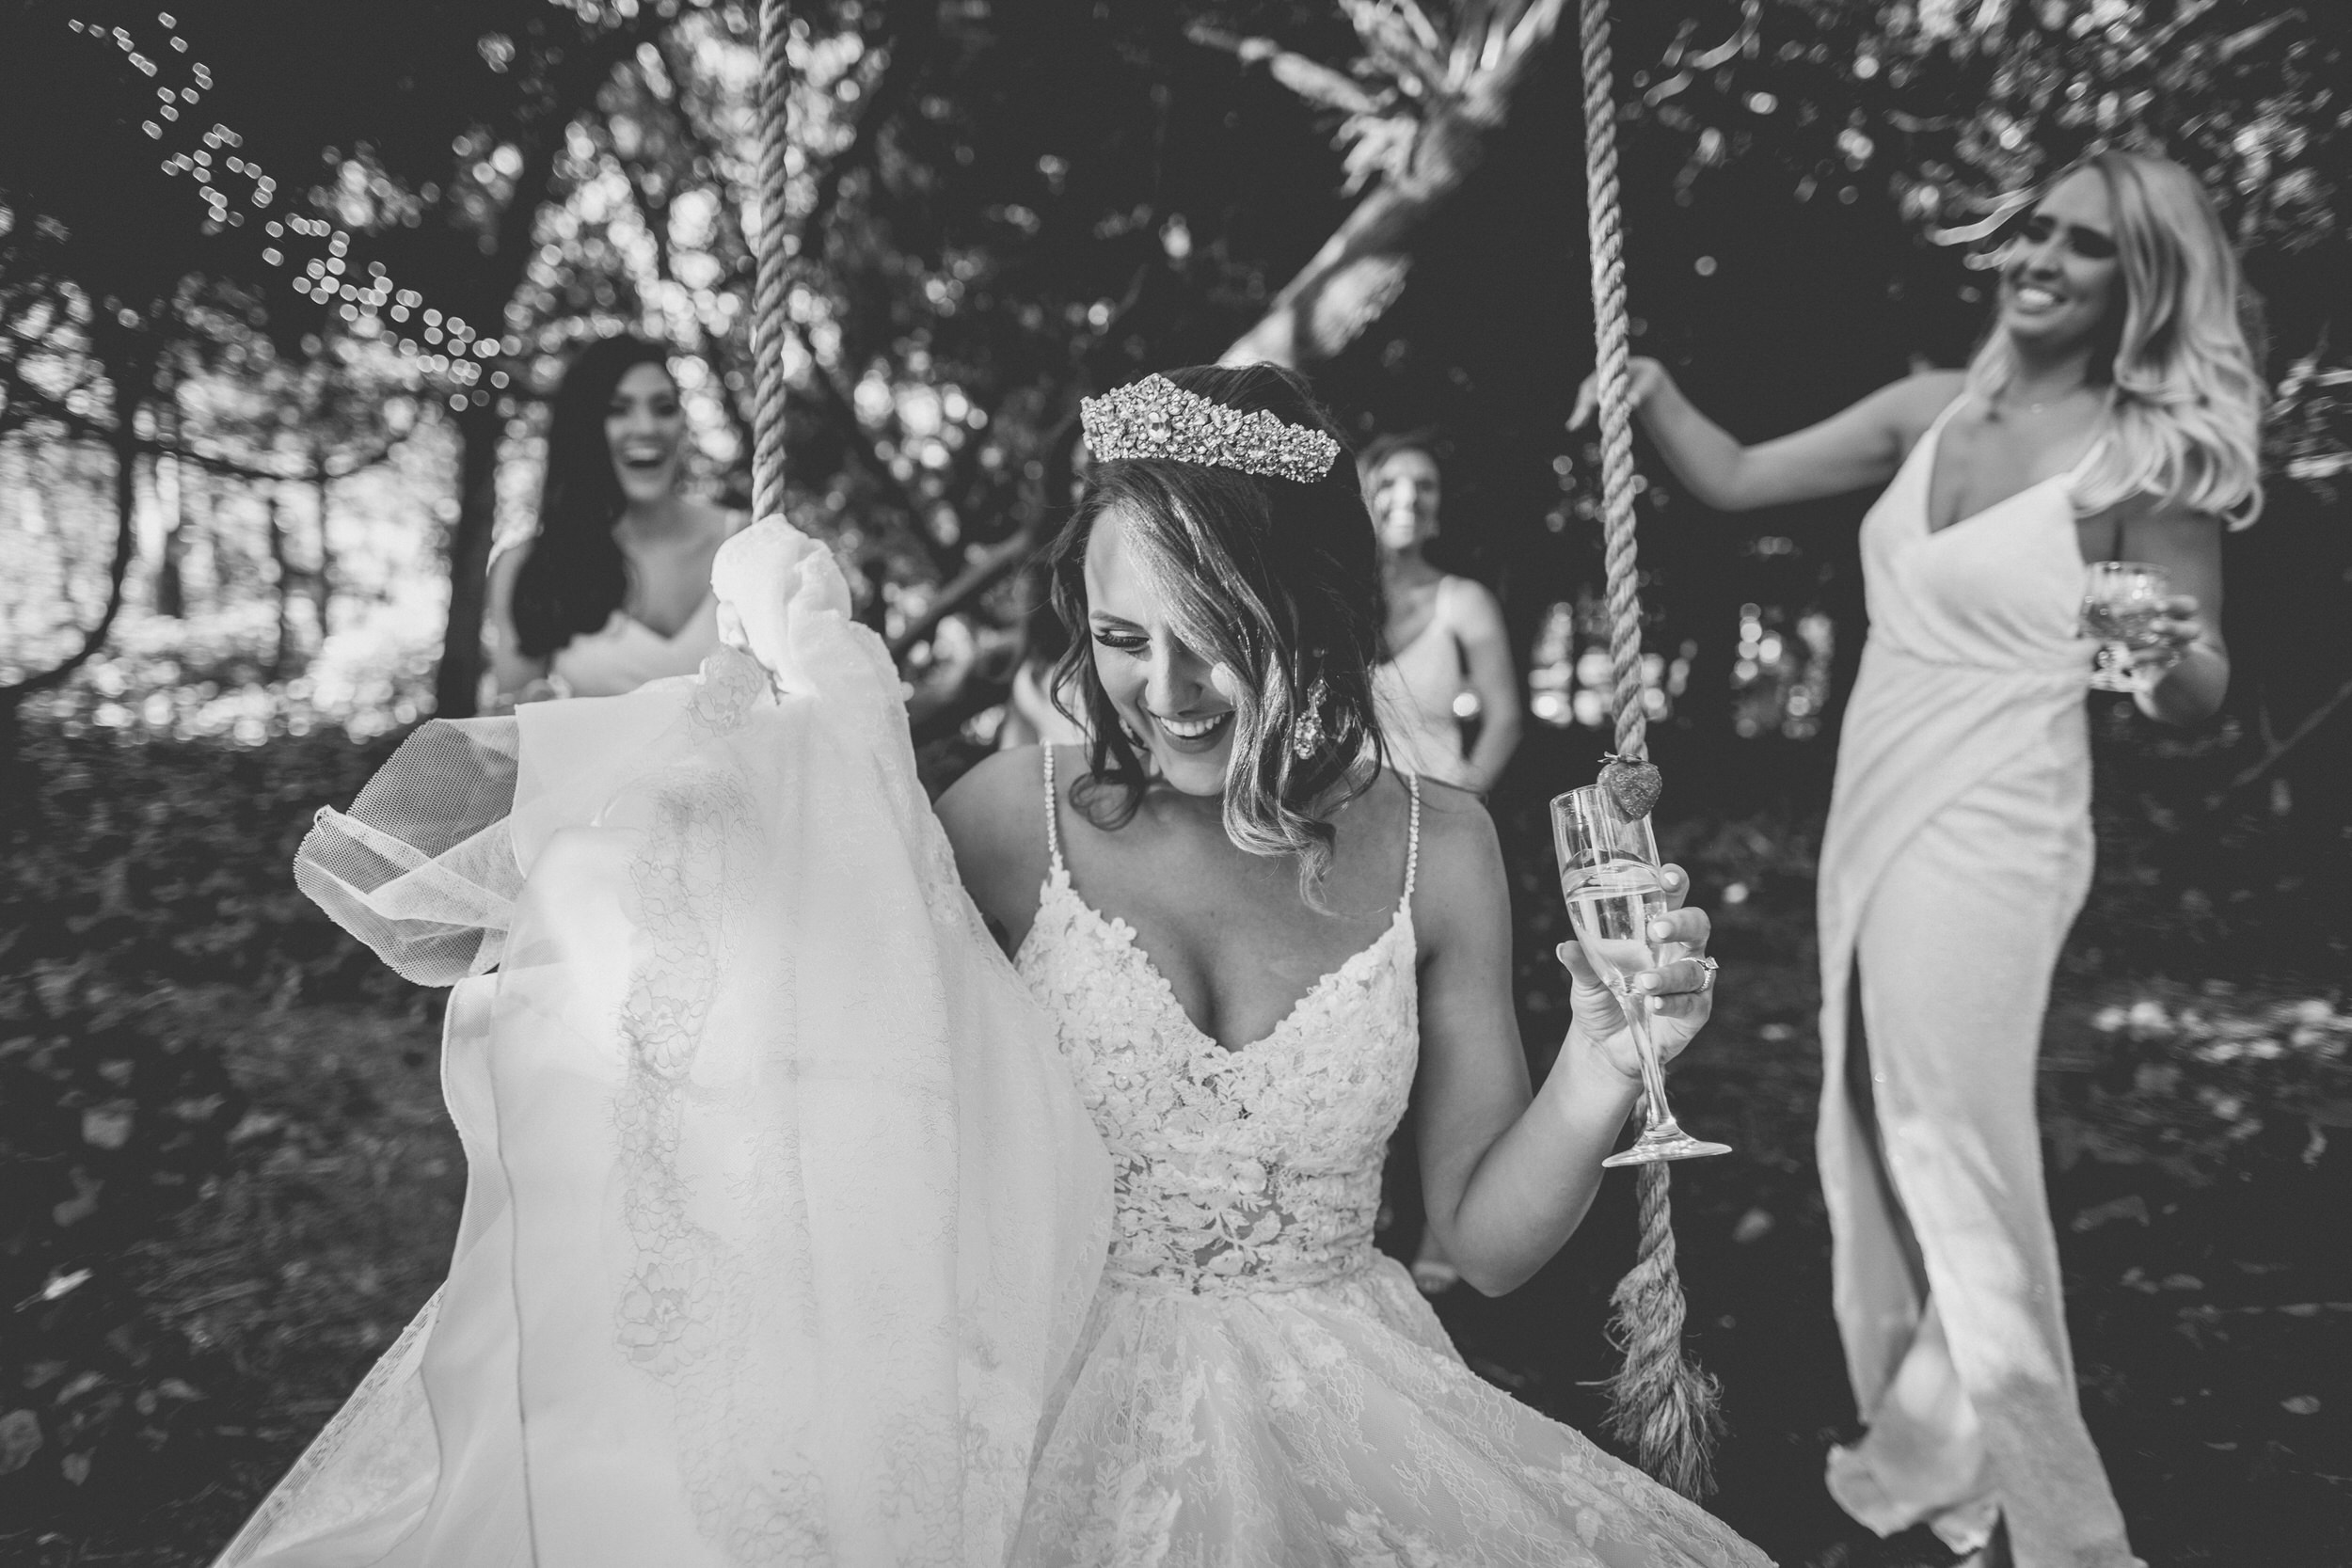 Bride, Rachel, swinging surrounded by her bridesmaids